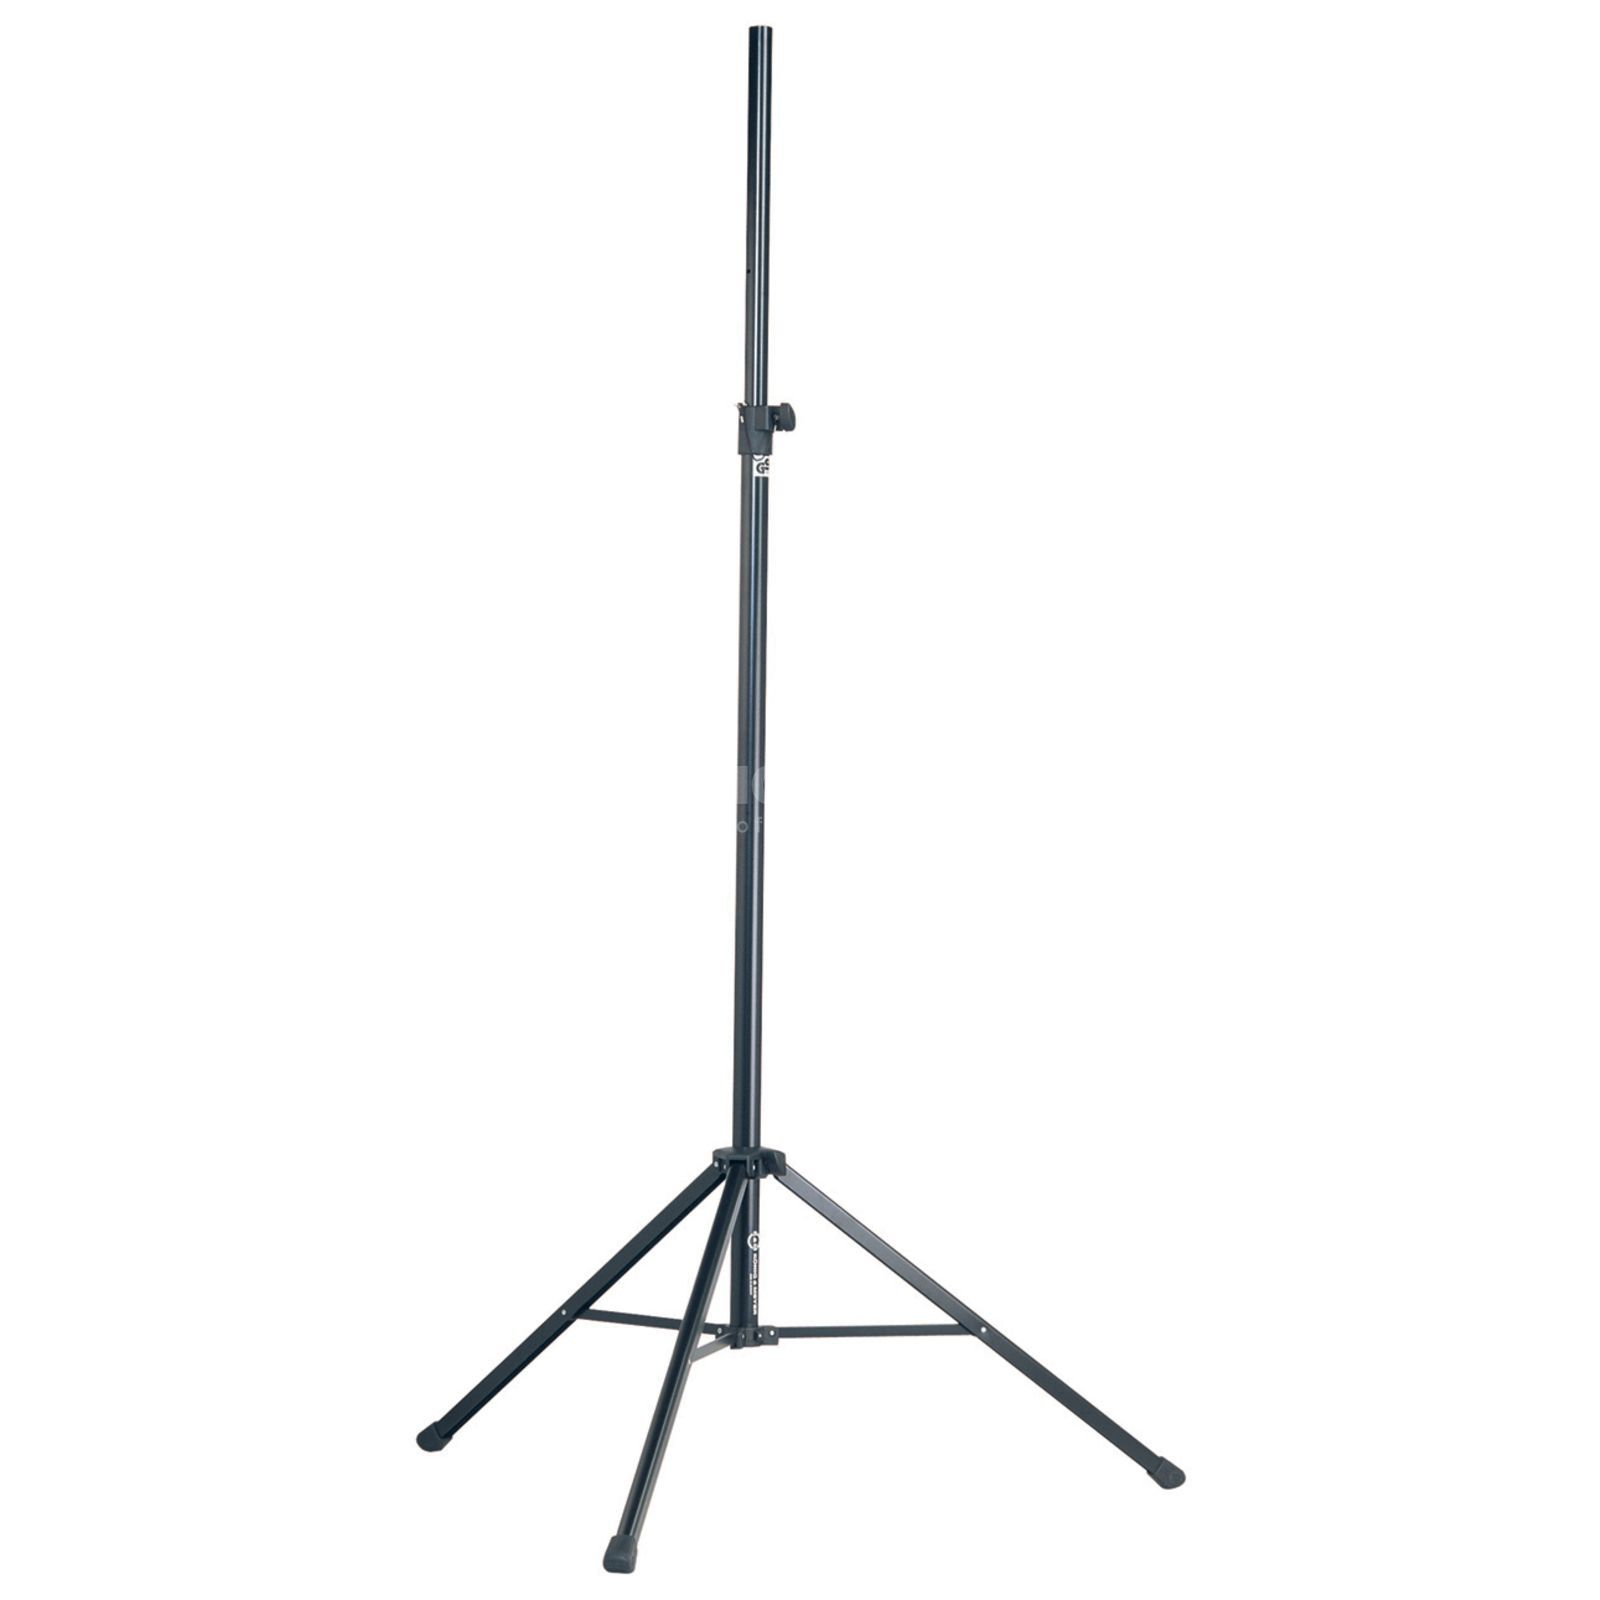 König & Meyer 24630 Light Stand 1950-2910 mm up to 25 kg Produktbillede